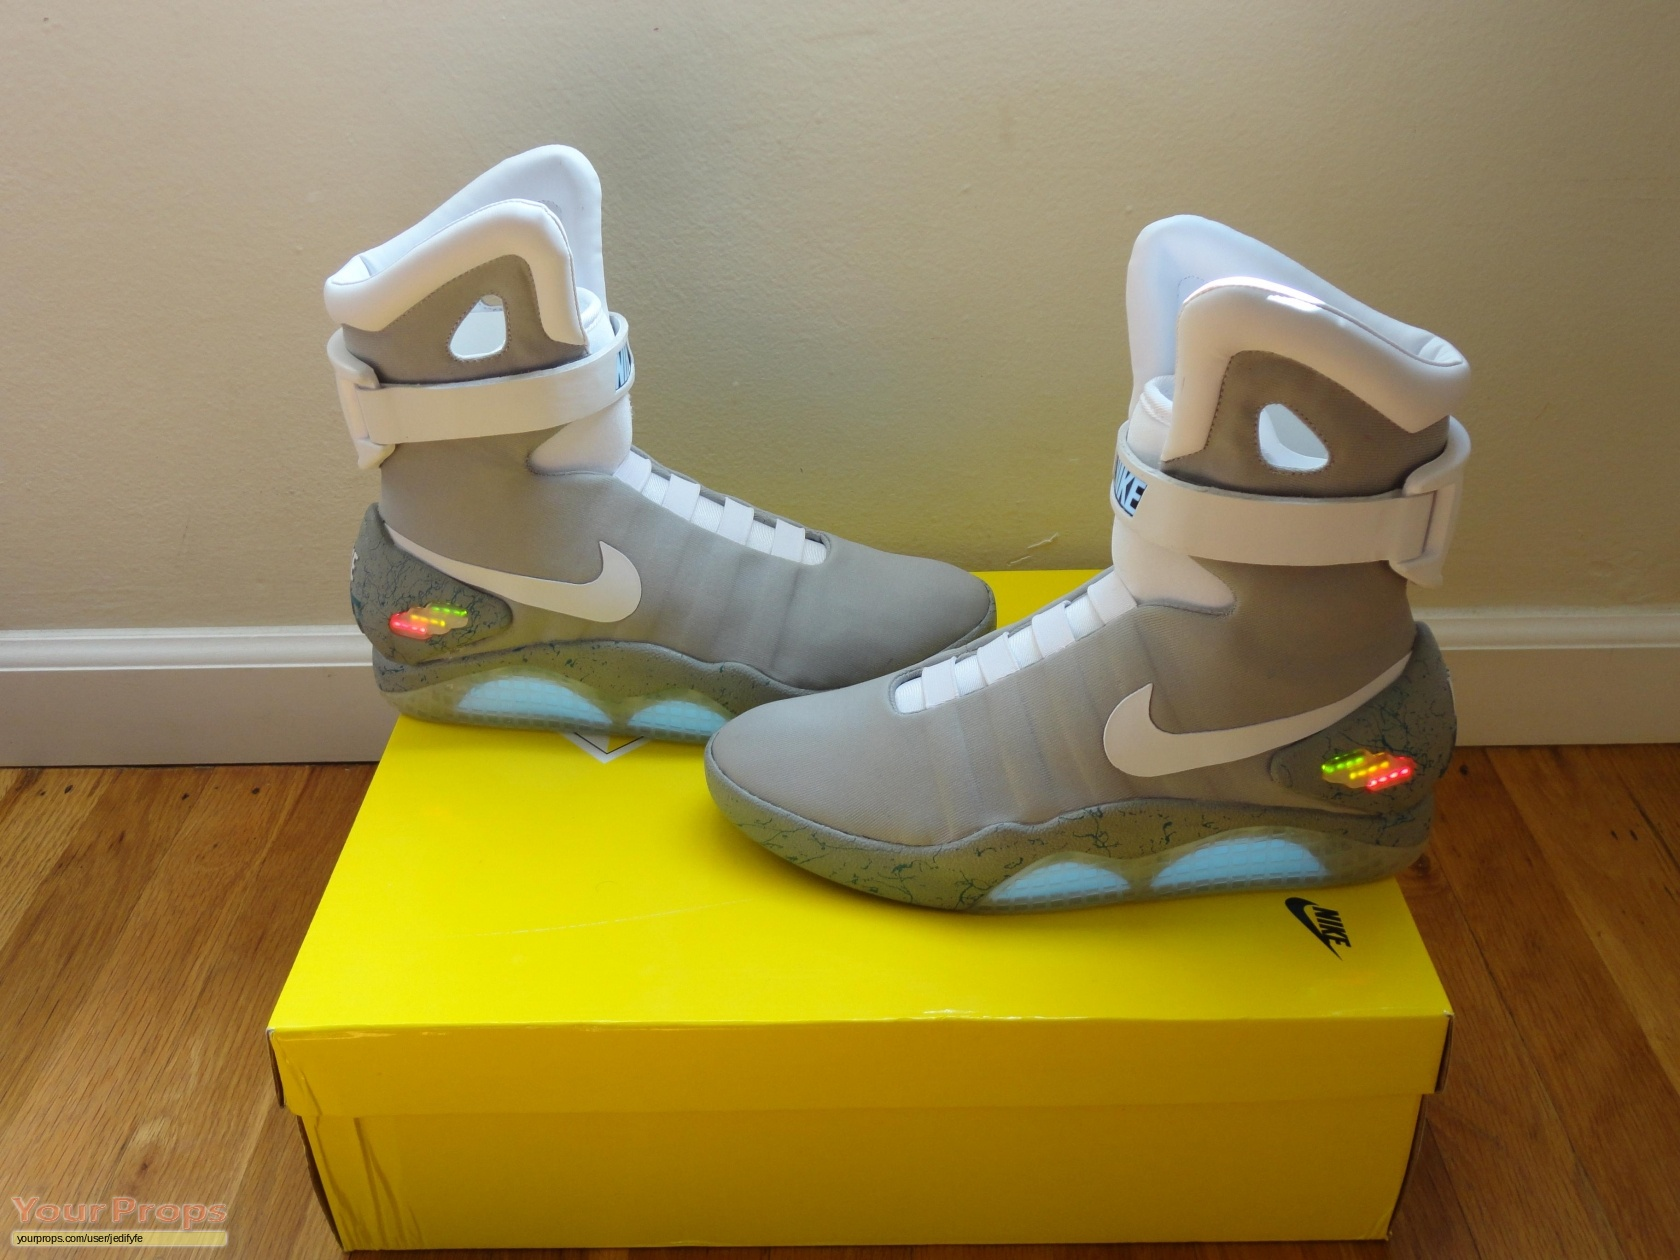 Back To The Future 2 NIKE MAG's replica movie costume